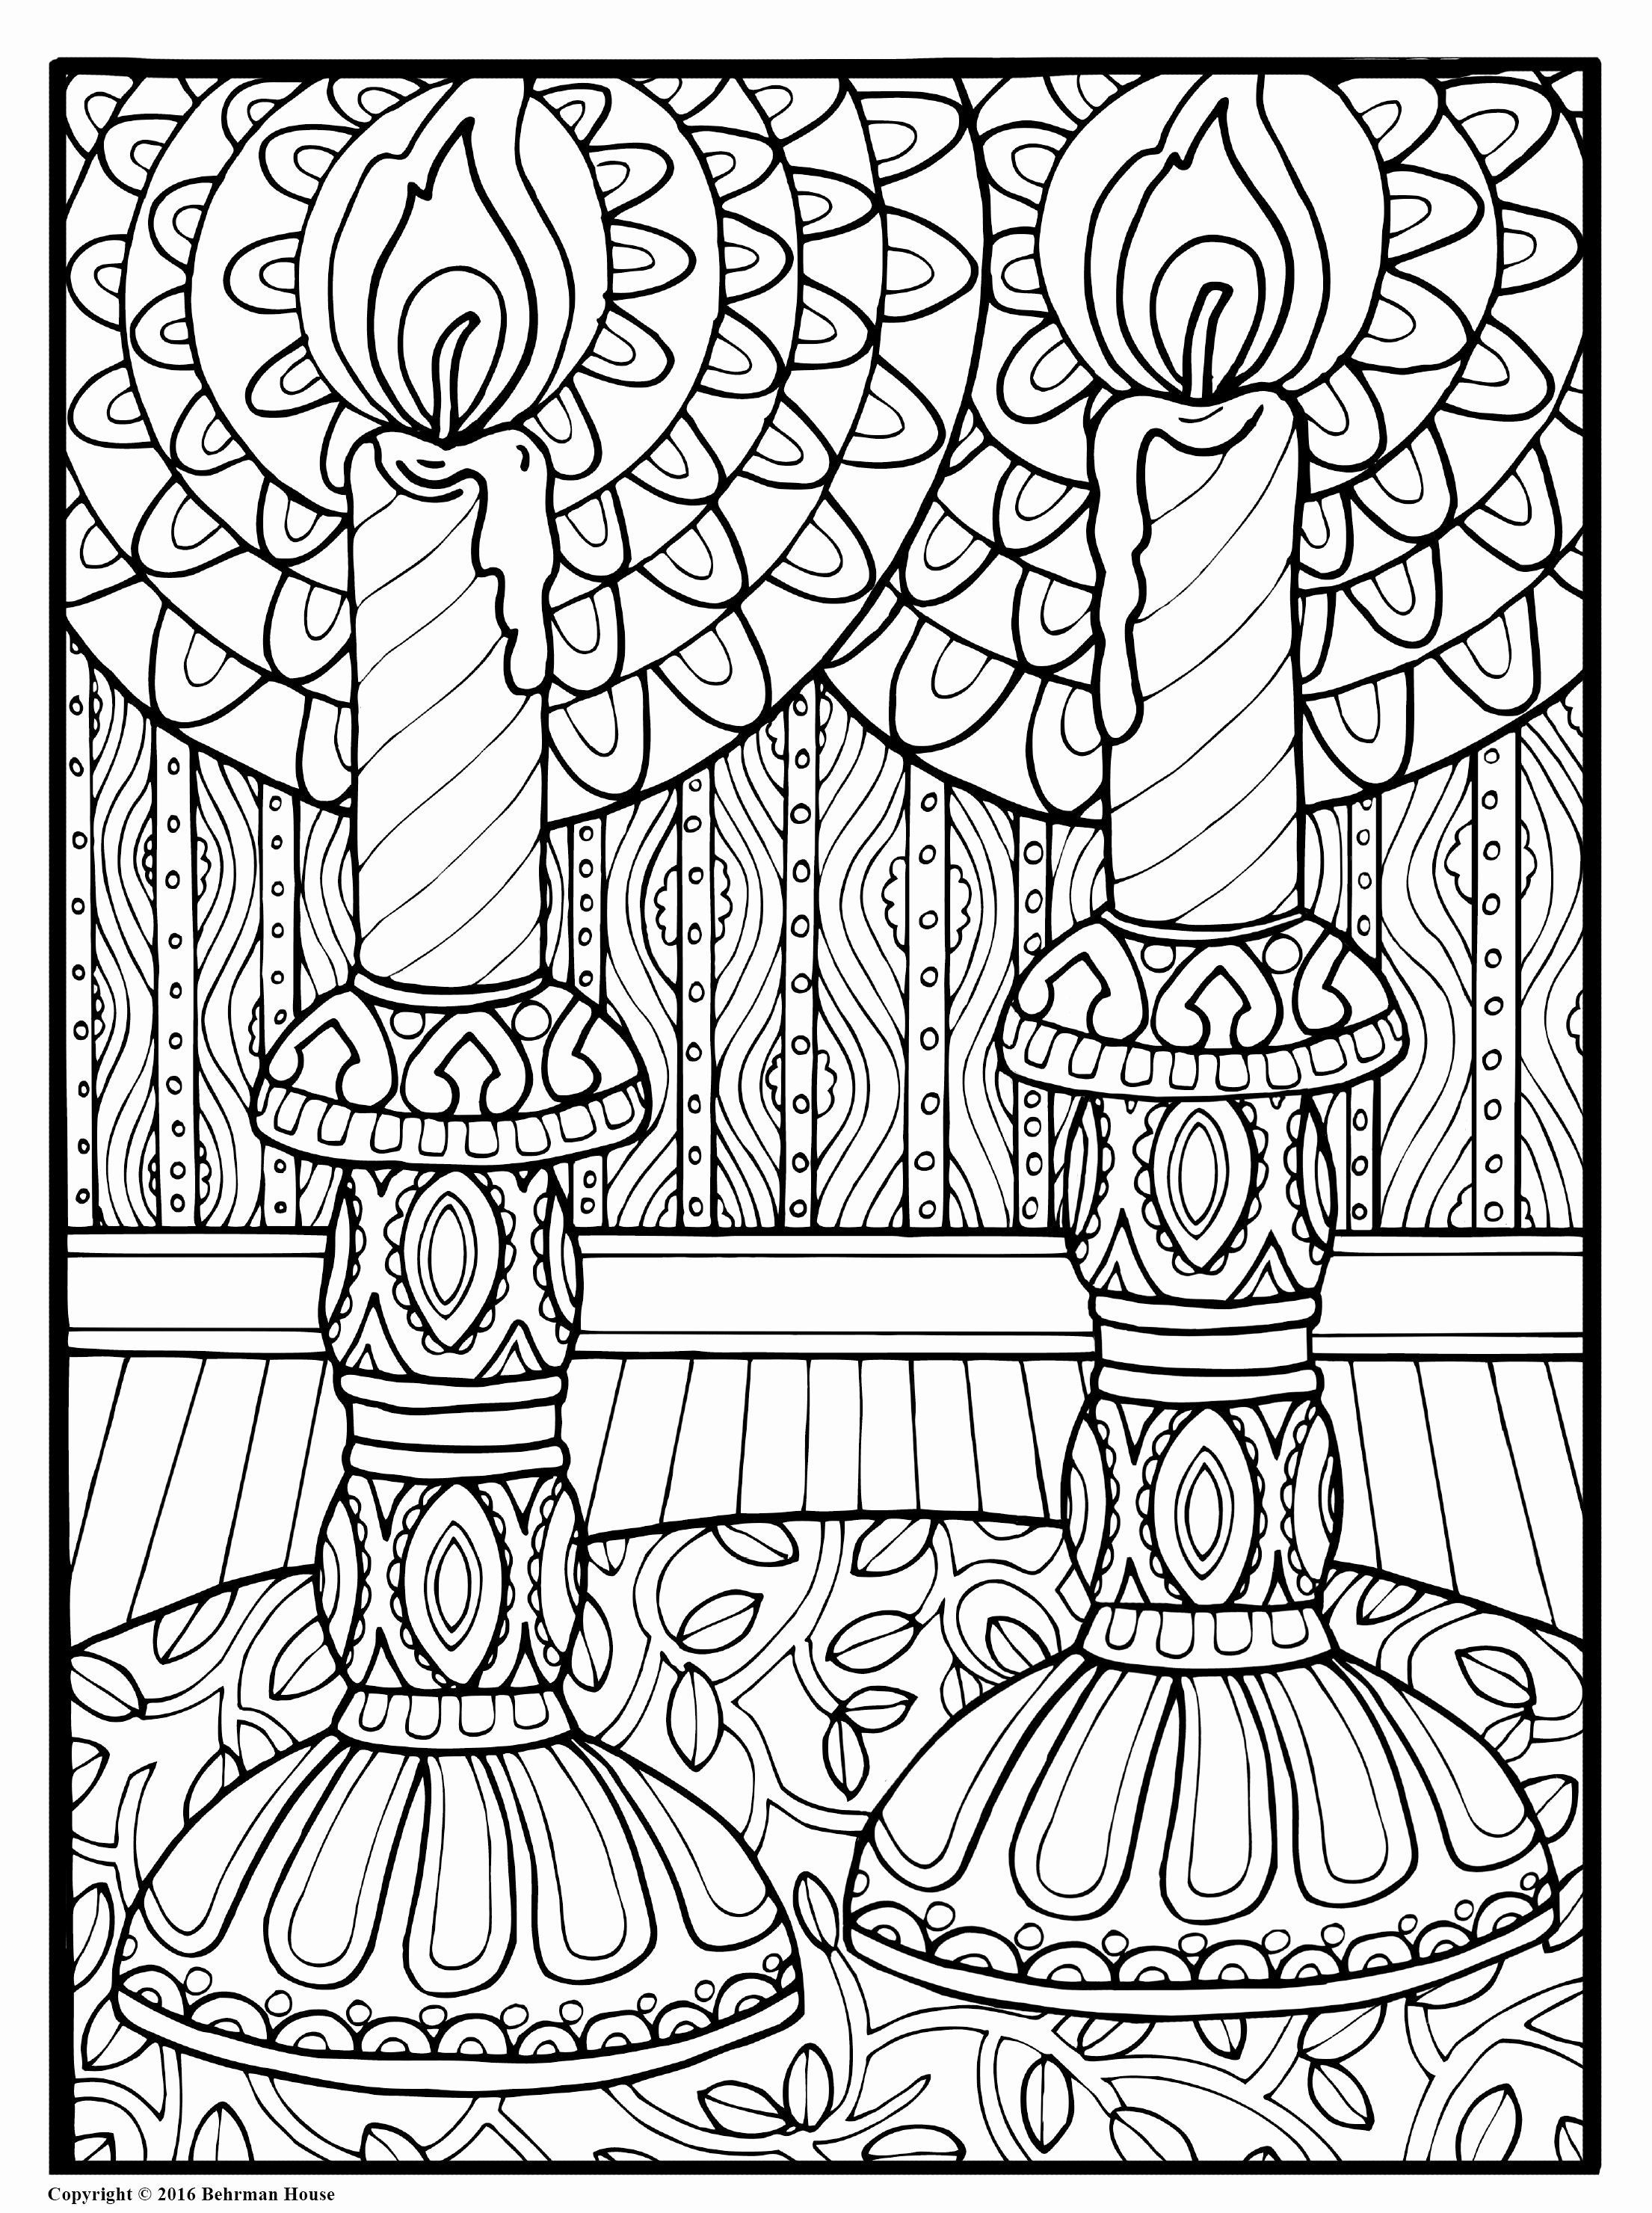 Pin On Example Art And Design Coloring